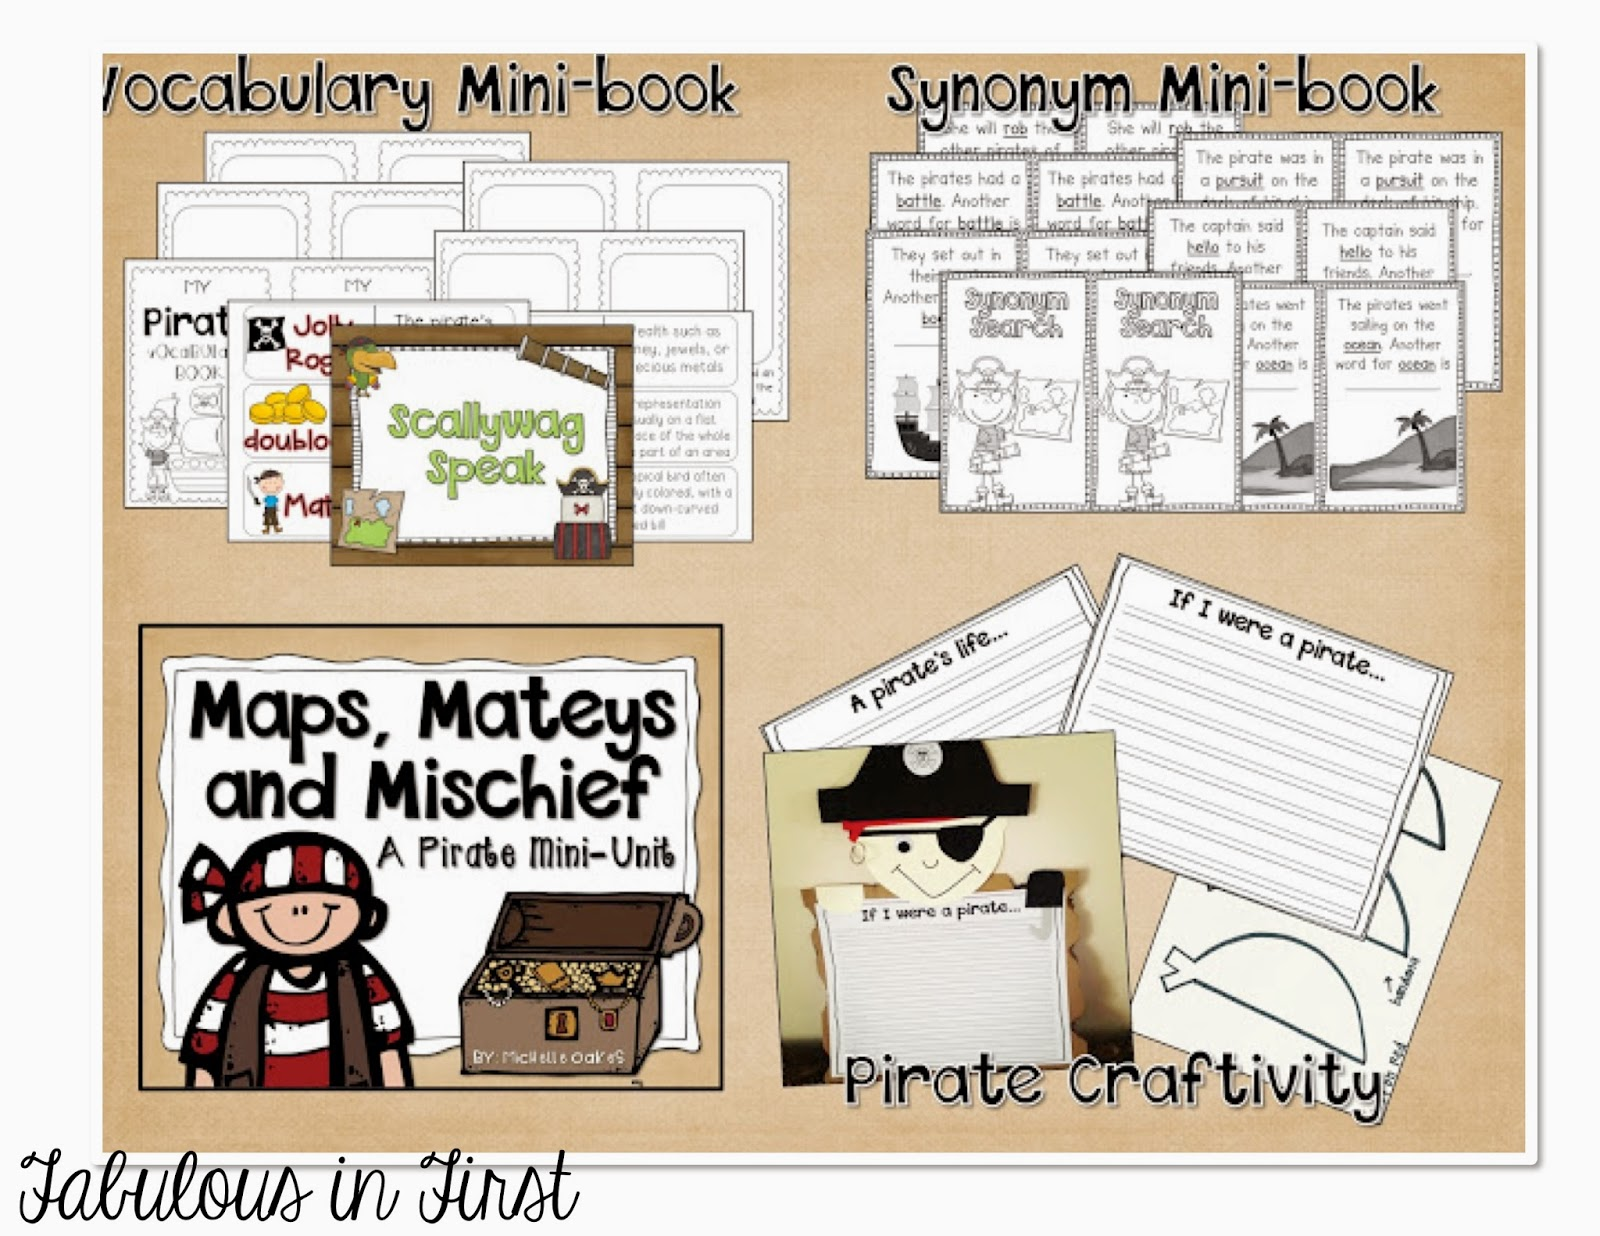 http://www.teacherspayteachers.com/Product/Maps-Mateys-and-Mischief-A-pirate-map-skills-unit-638581